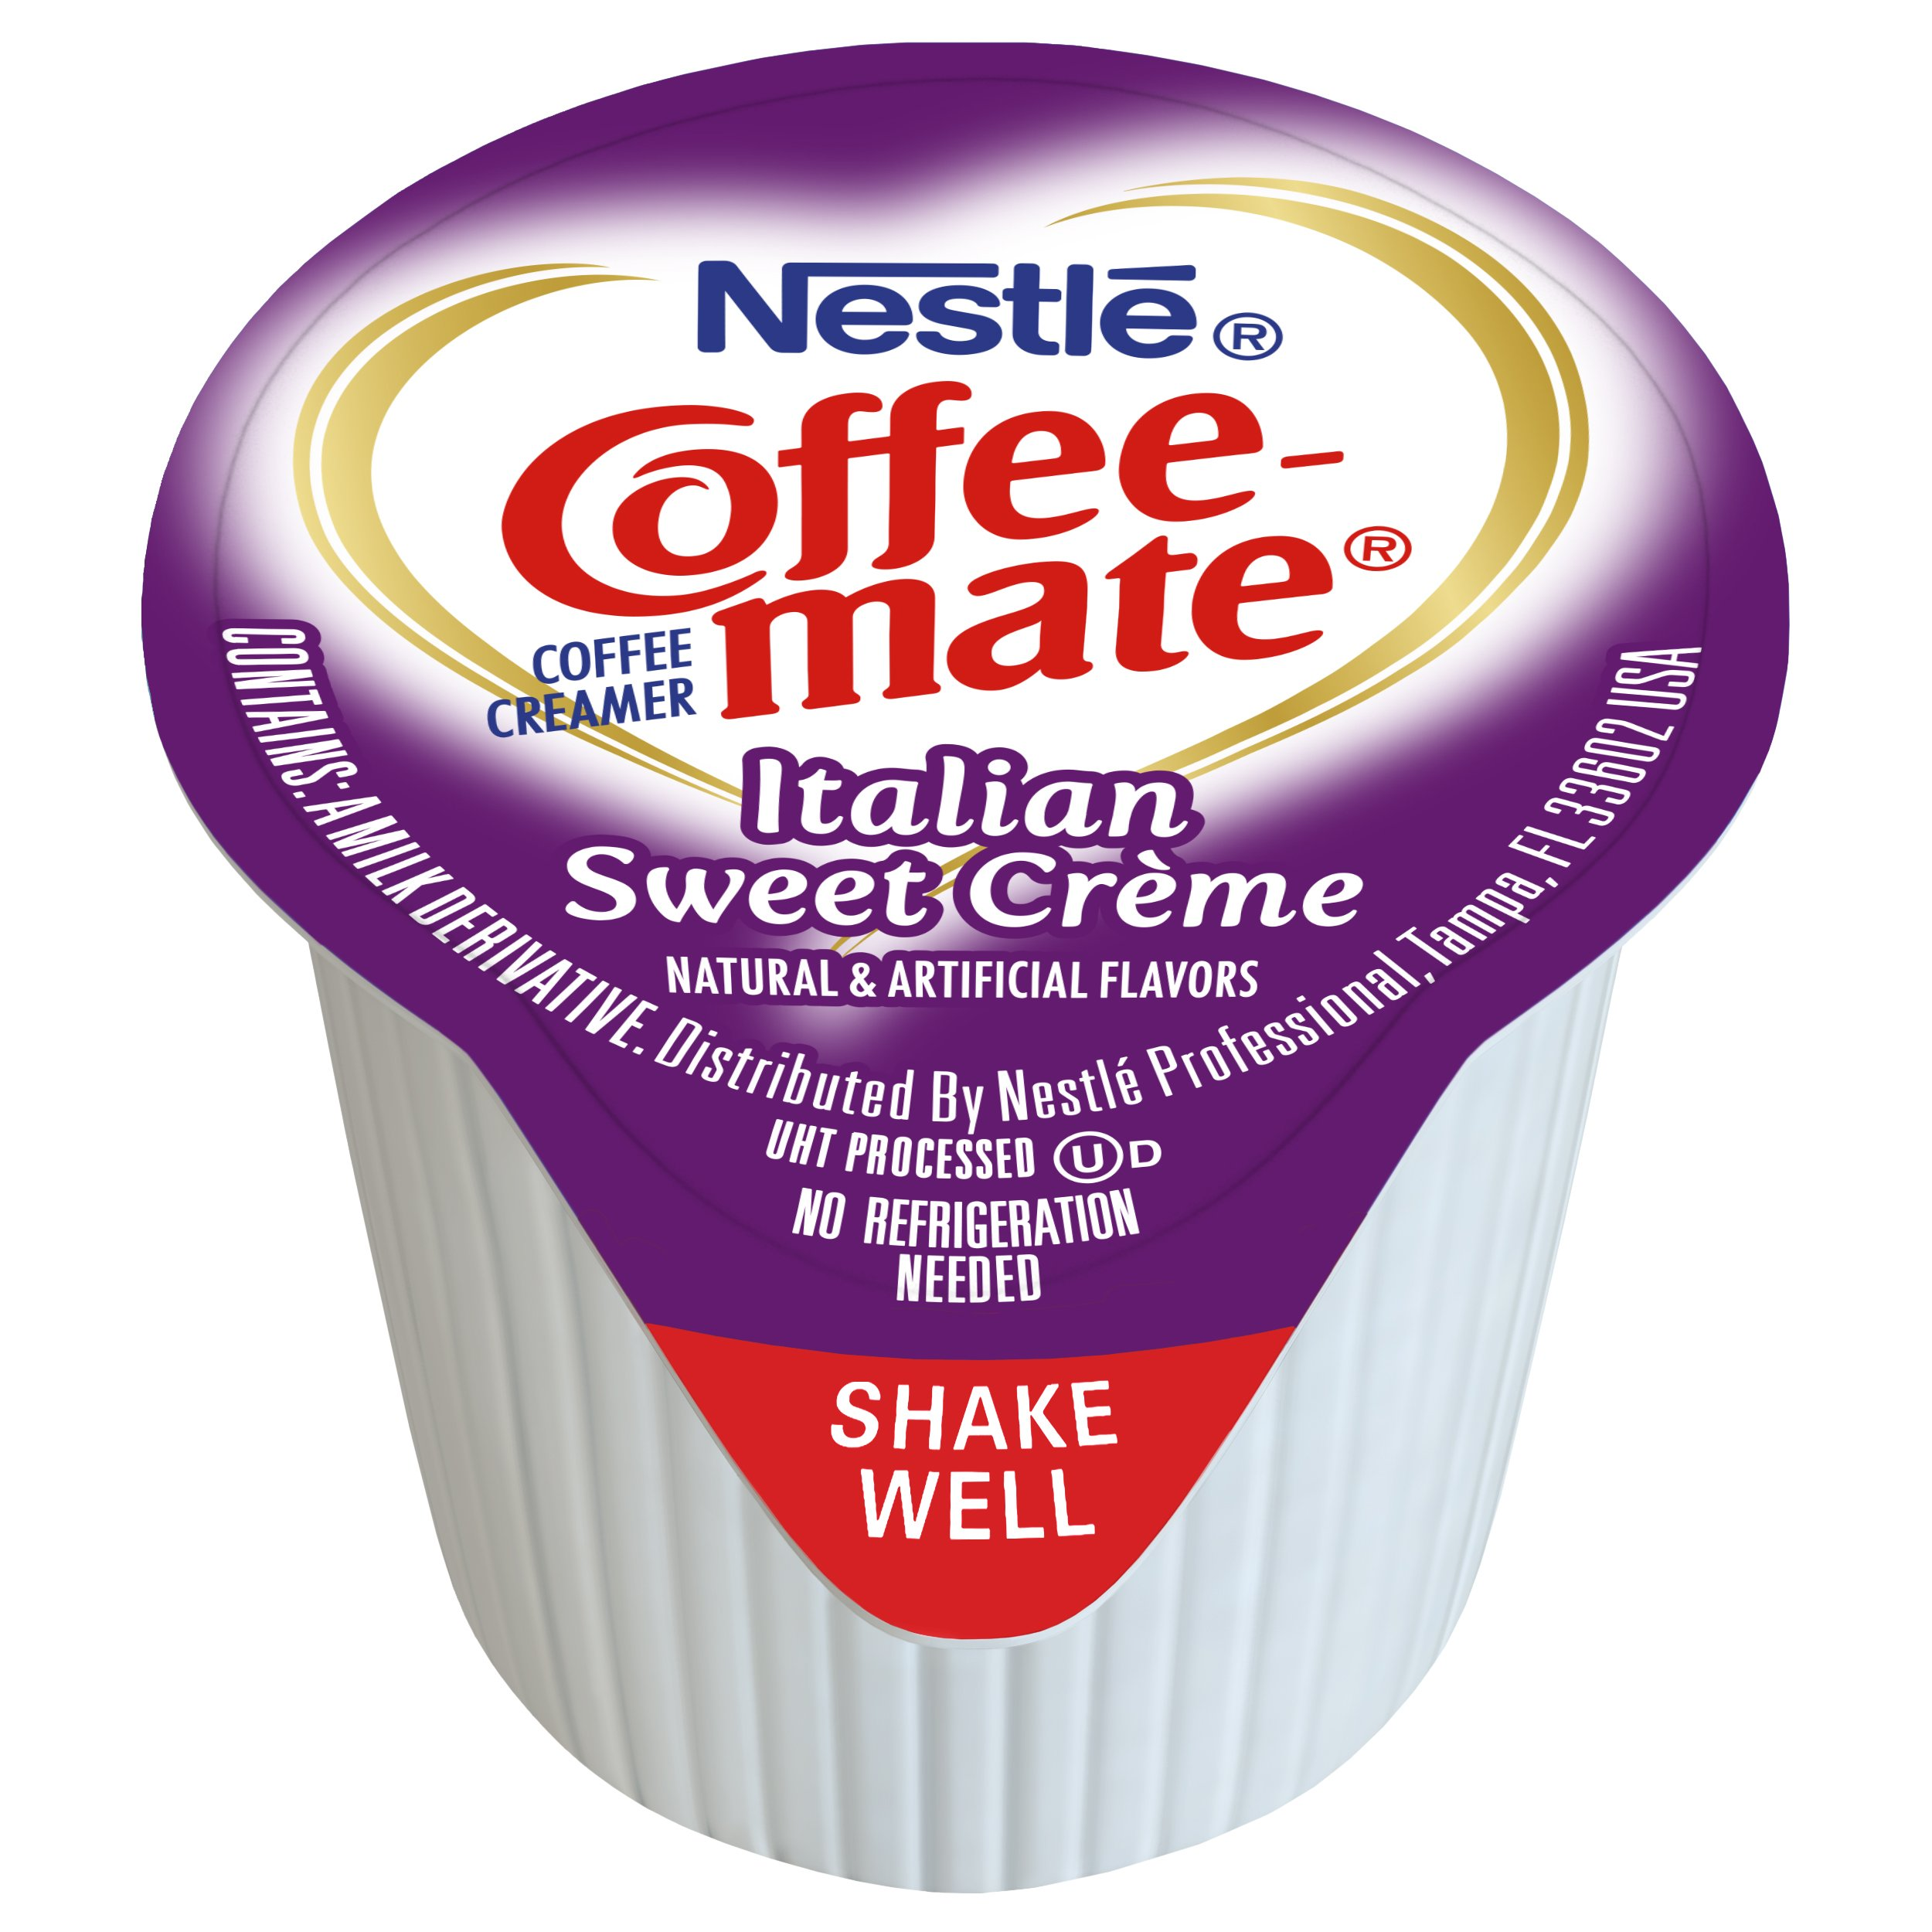 Nestle Coffee-mate Coffee Creamer, Italian Sweet Crème, liquid creamer singles, 180 Count (Pack of 1) by Nestle Coffee Mate (Image #2)